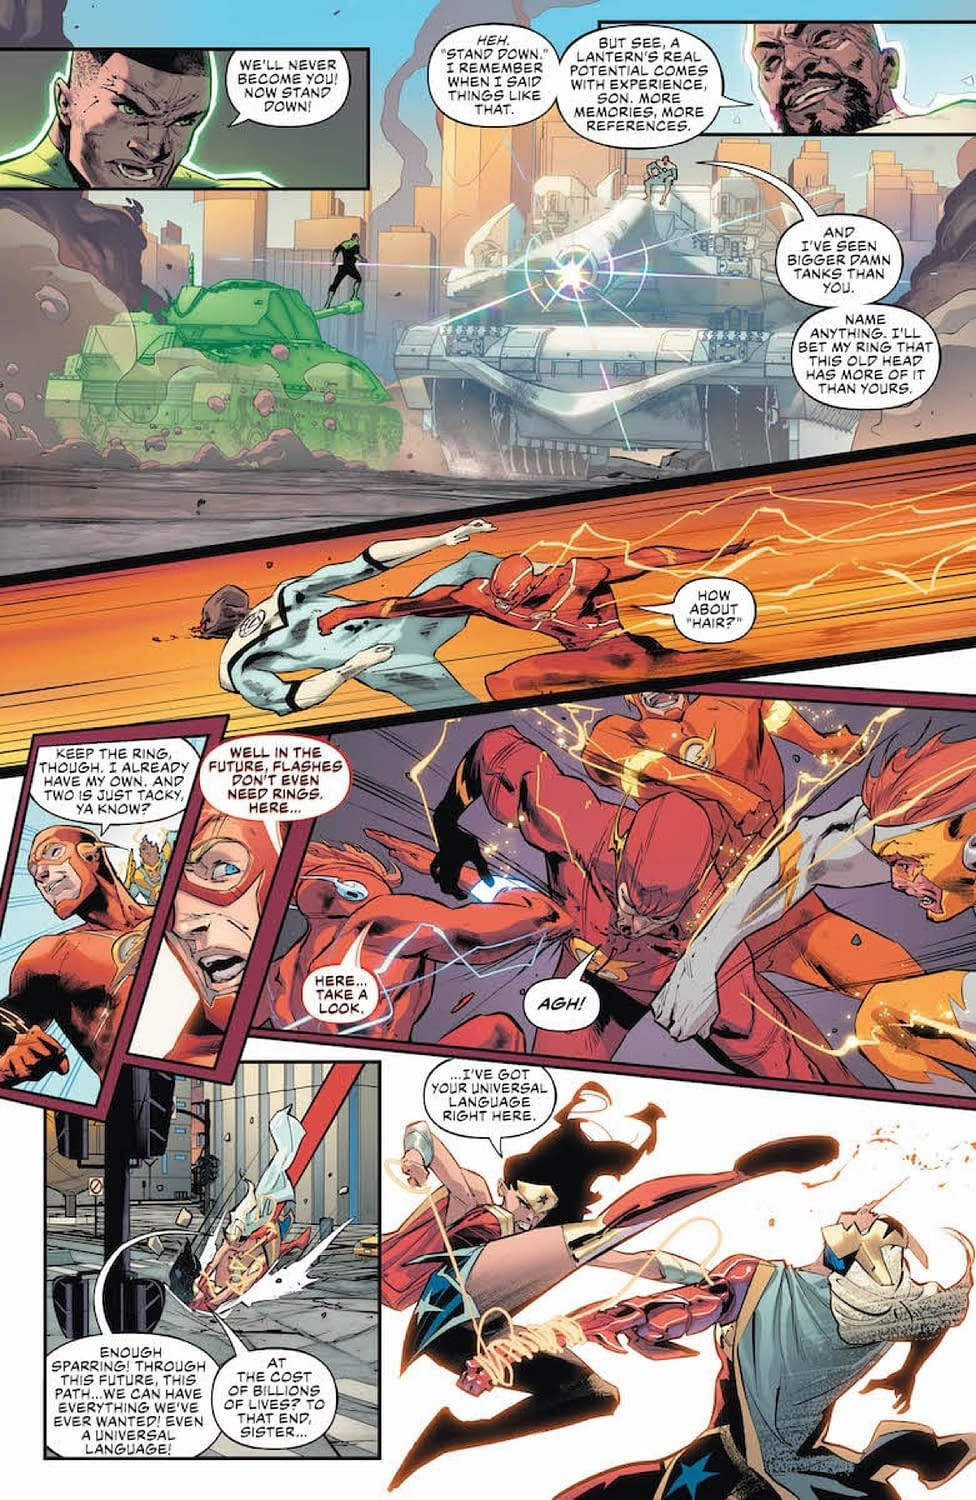 Superman Still Can't Stop Imagining Lois's Death (Justice League #24 Preview)